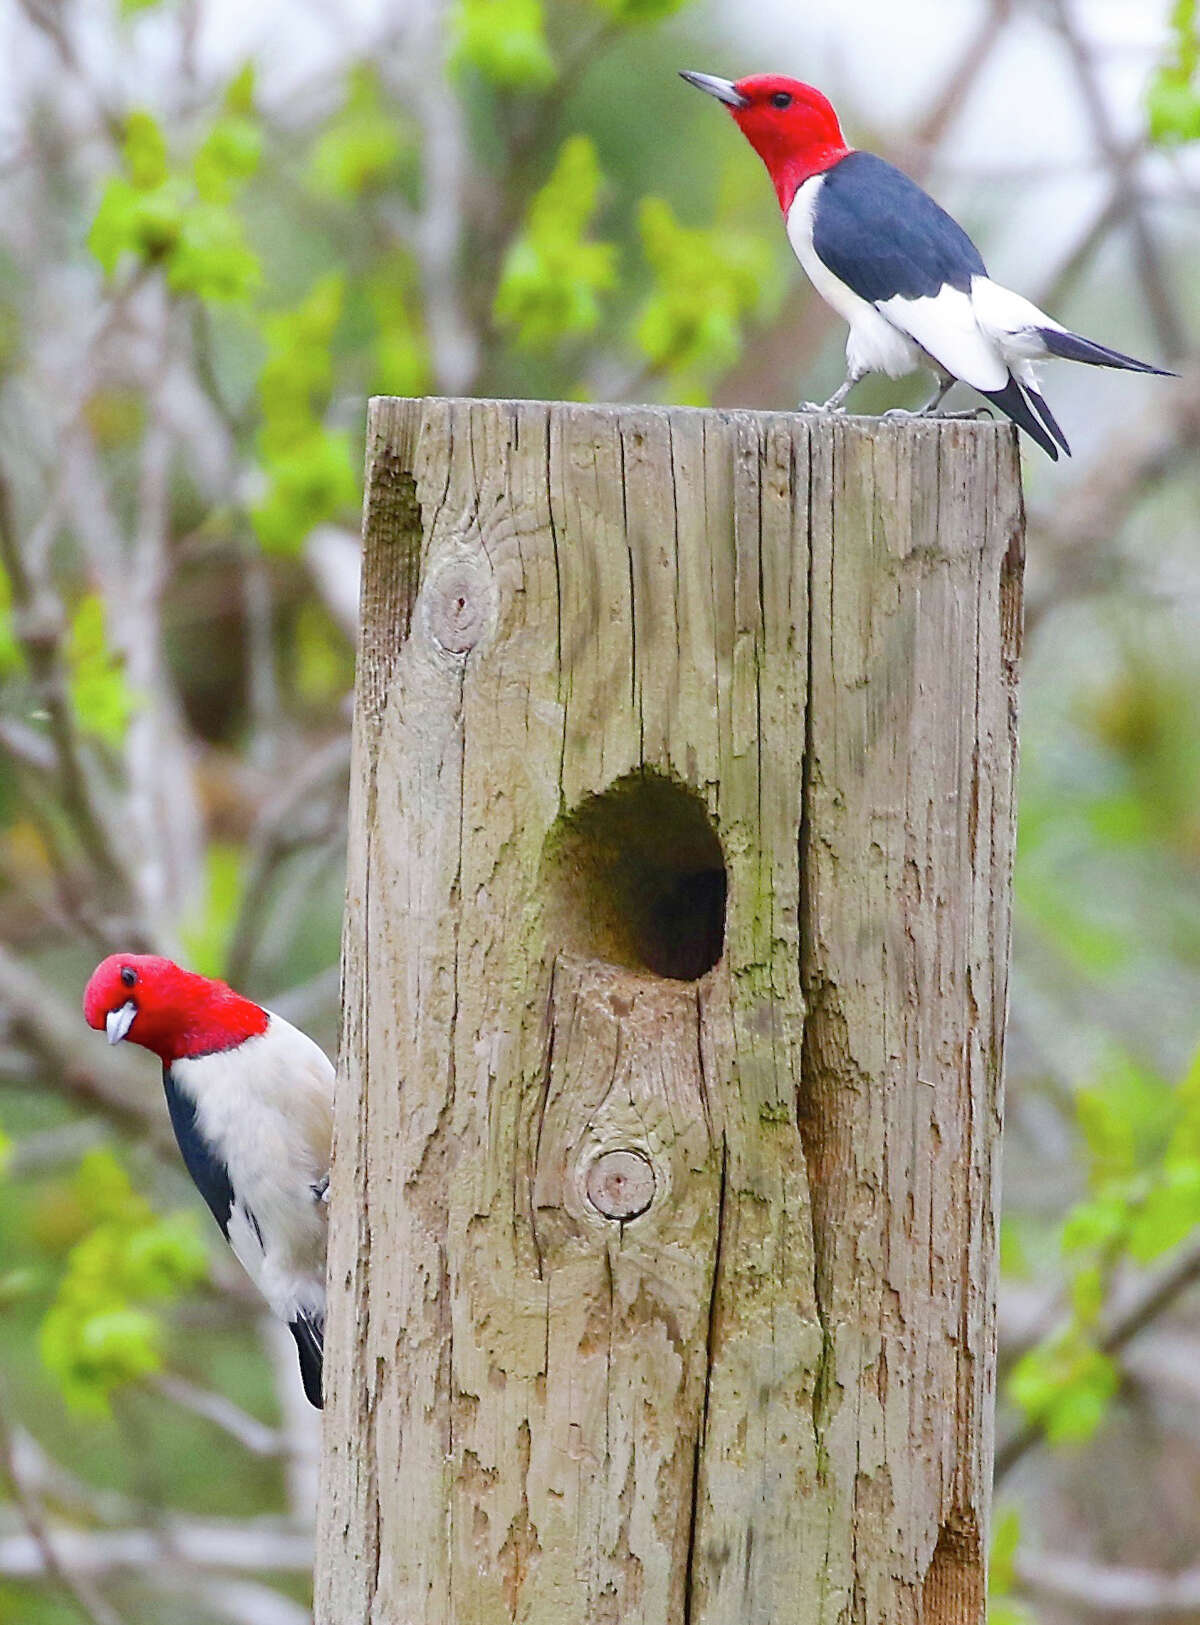 Woodpeckers Sharing a Tree Source: Farmers' Almanac